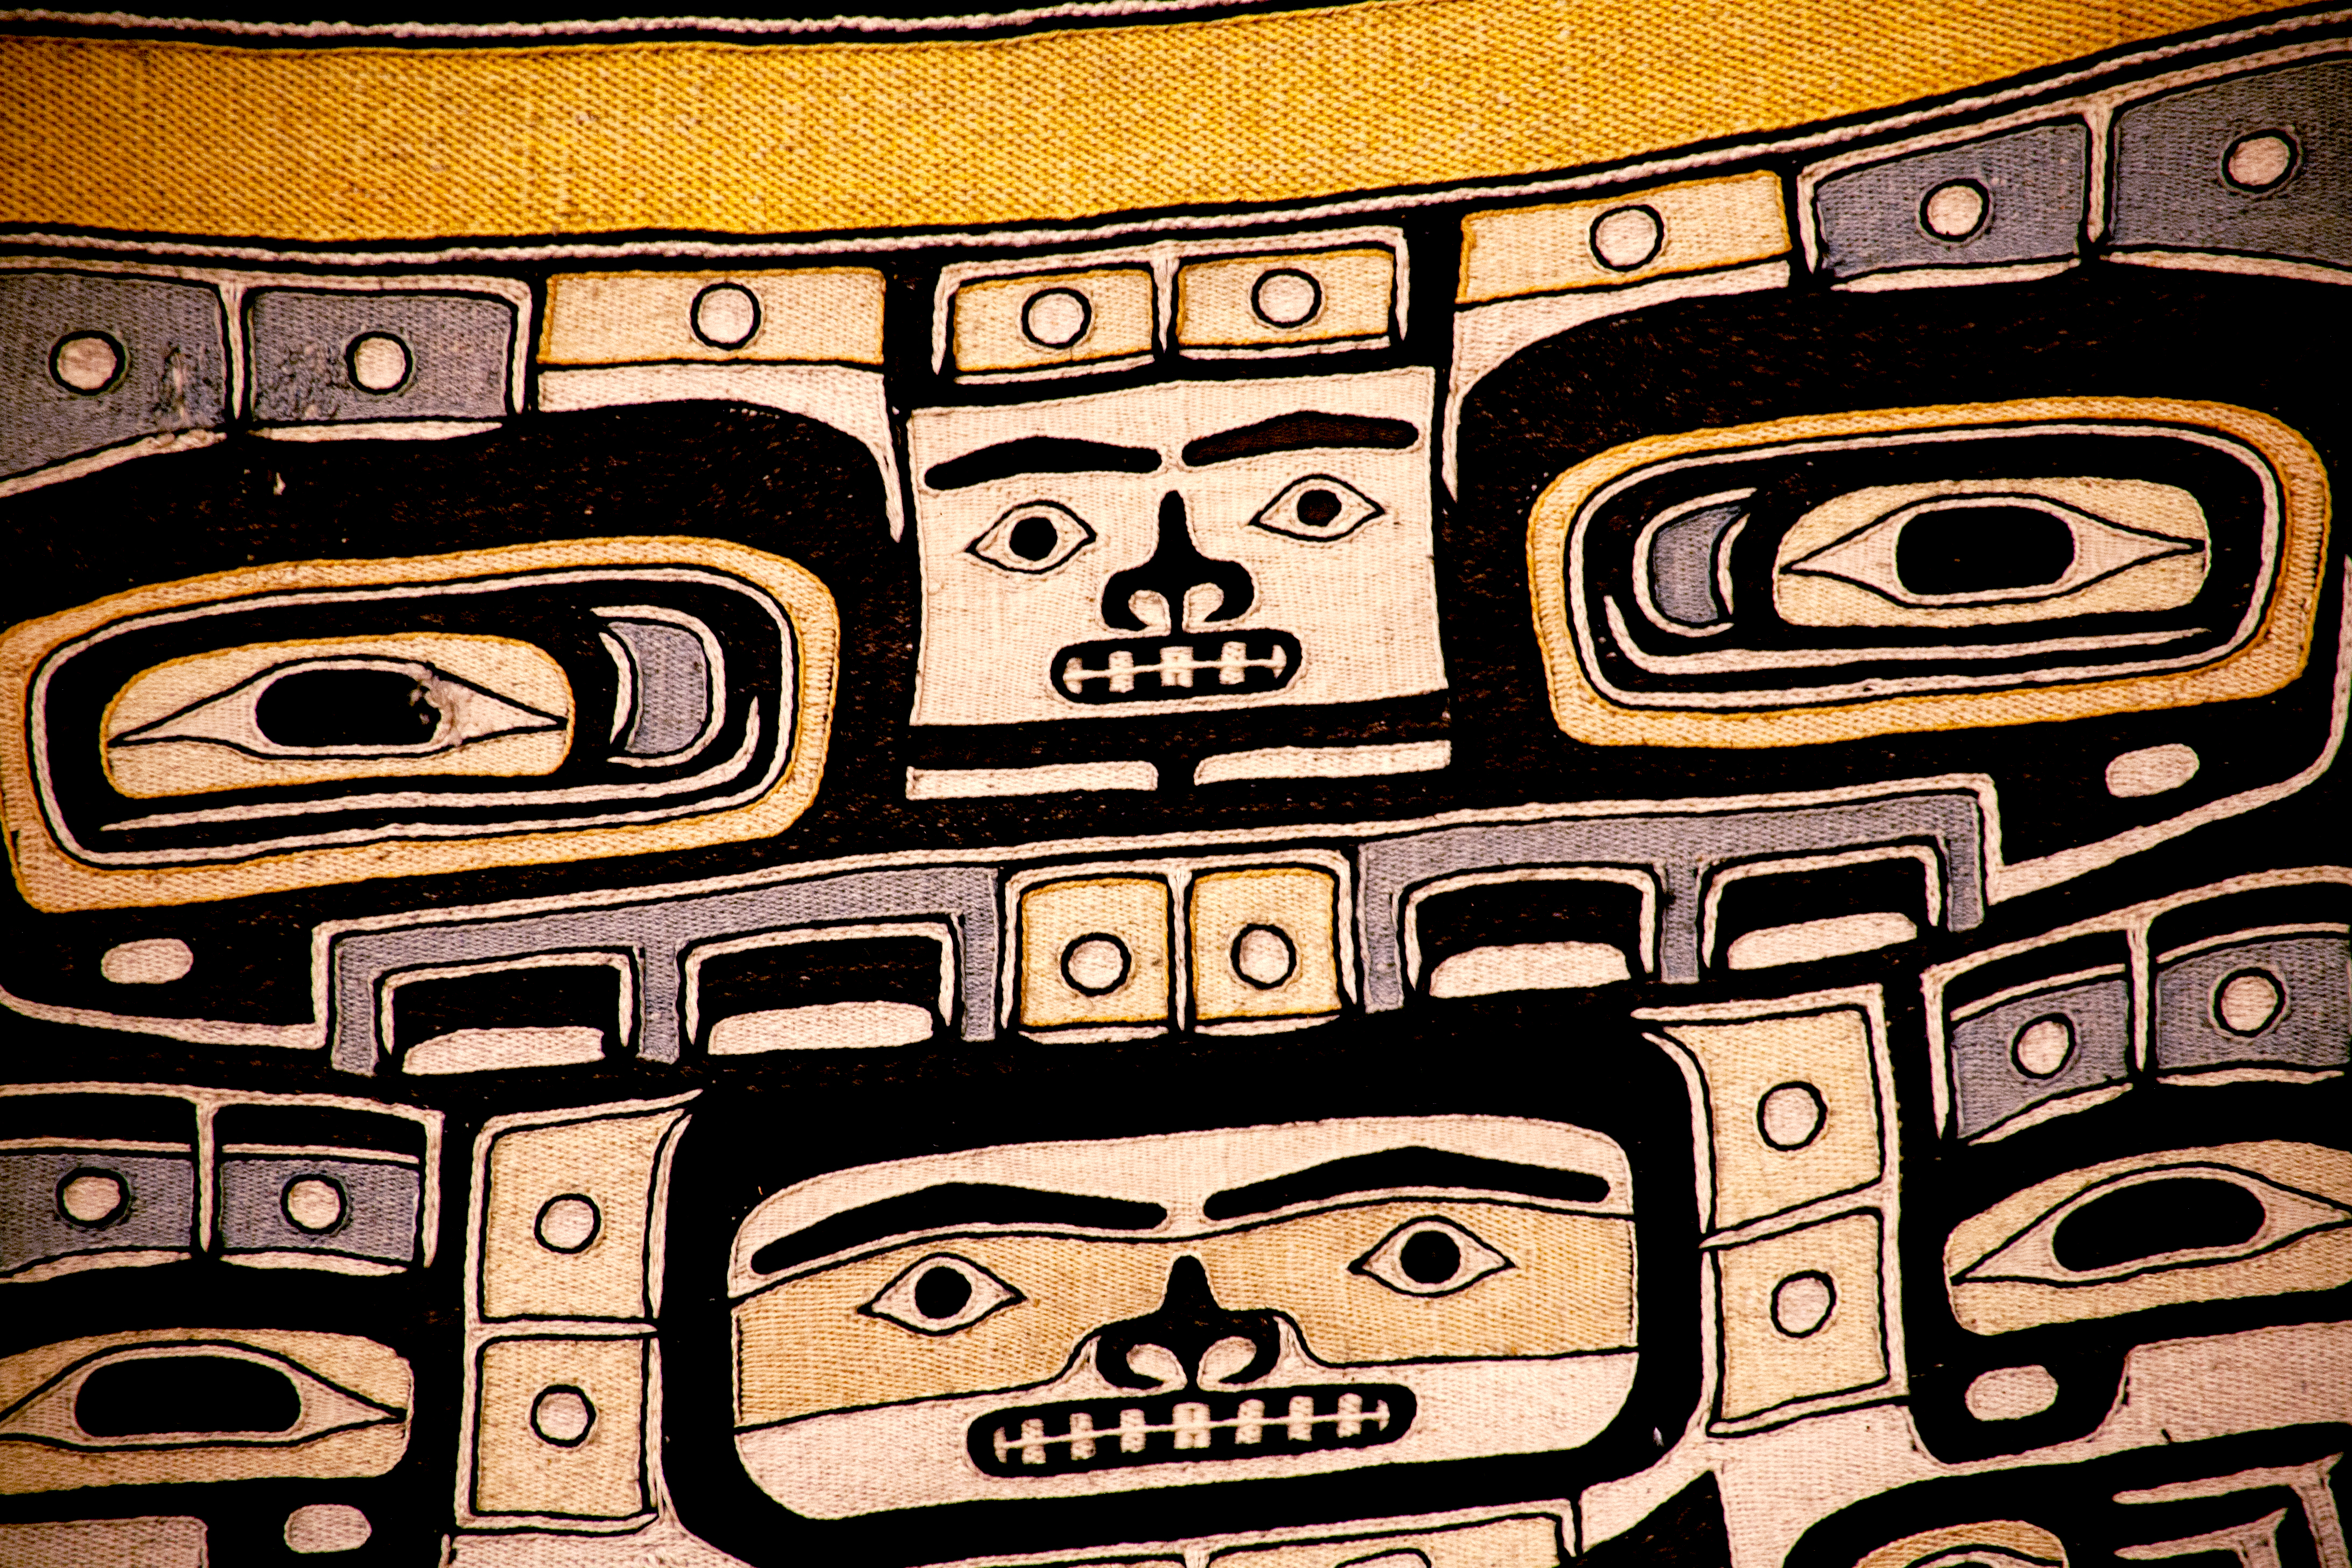 Our ancestors returned home How a Chilkat robe made its way back